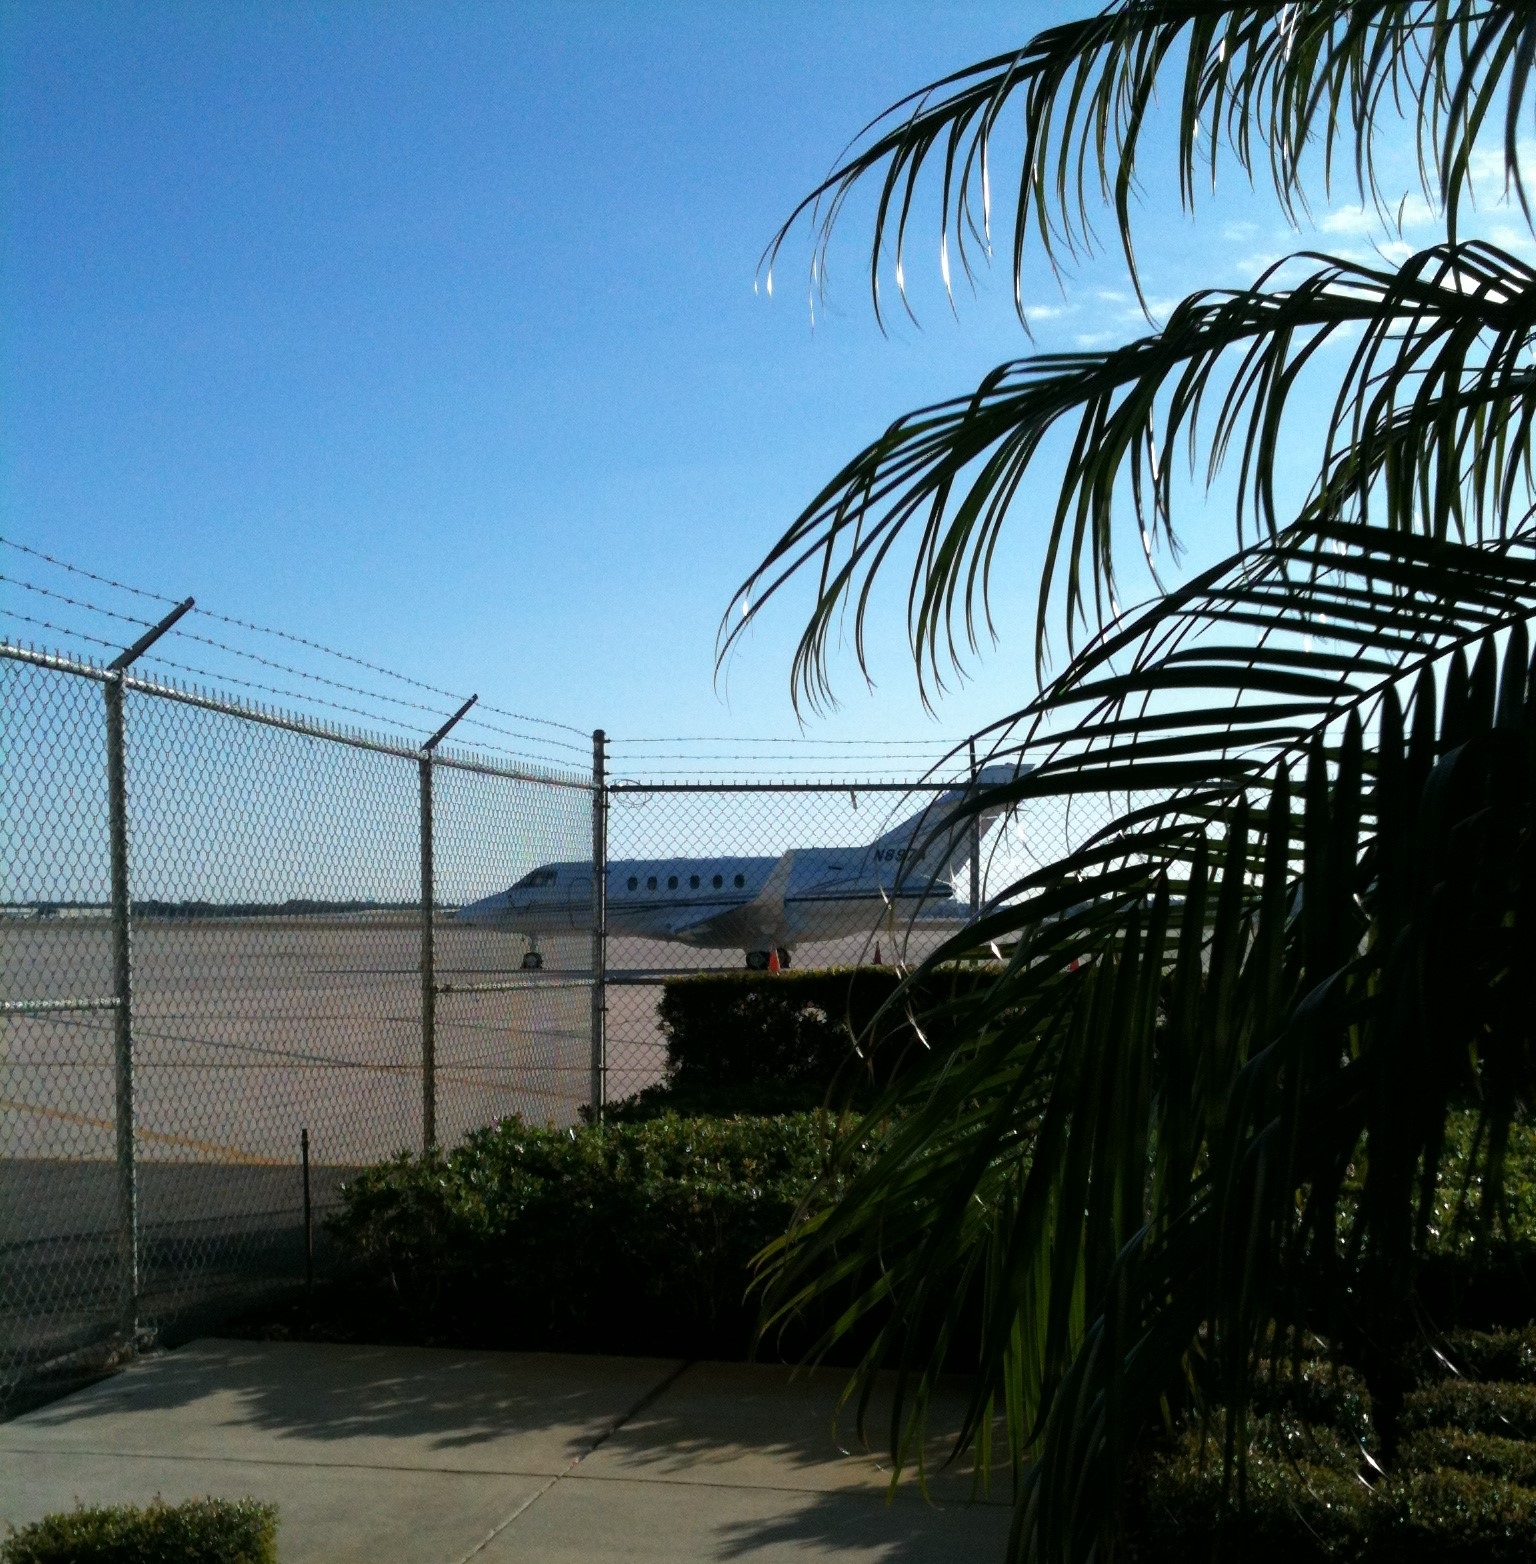 Private jet on tropical runway